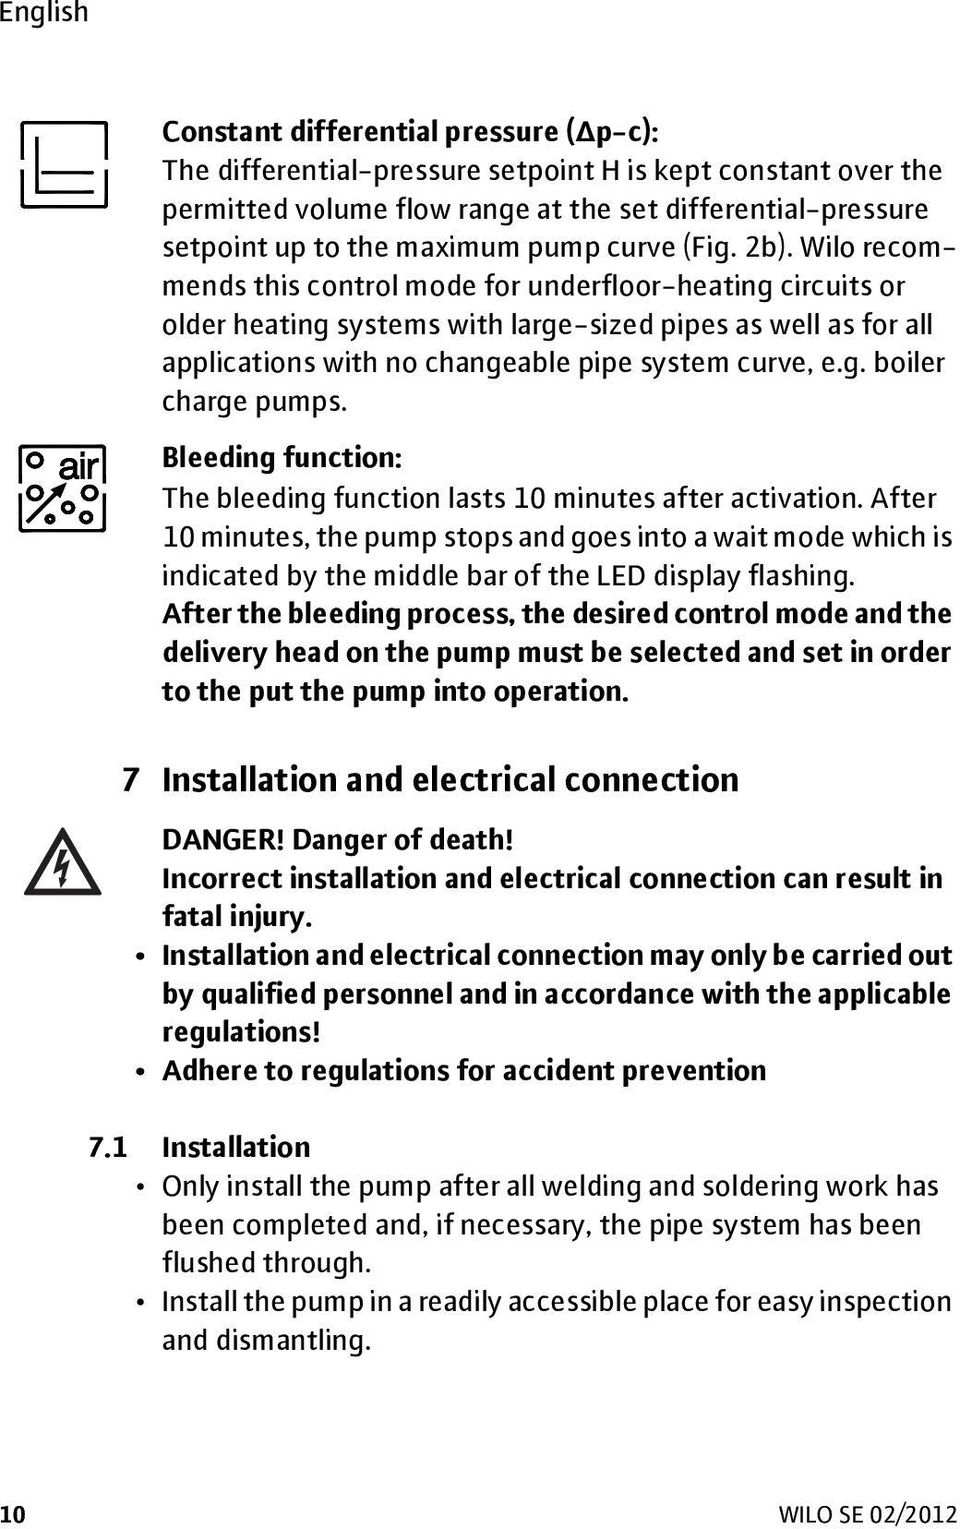 Wilo recommends this control mode for underfloor-heating circuits or older heating systems with large-sized pipes as well as for all applications with no changeable pipe system curve, e.g. boiler charge pumps.